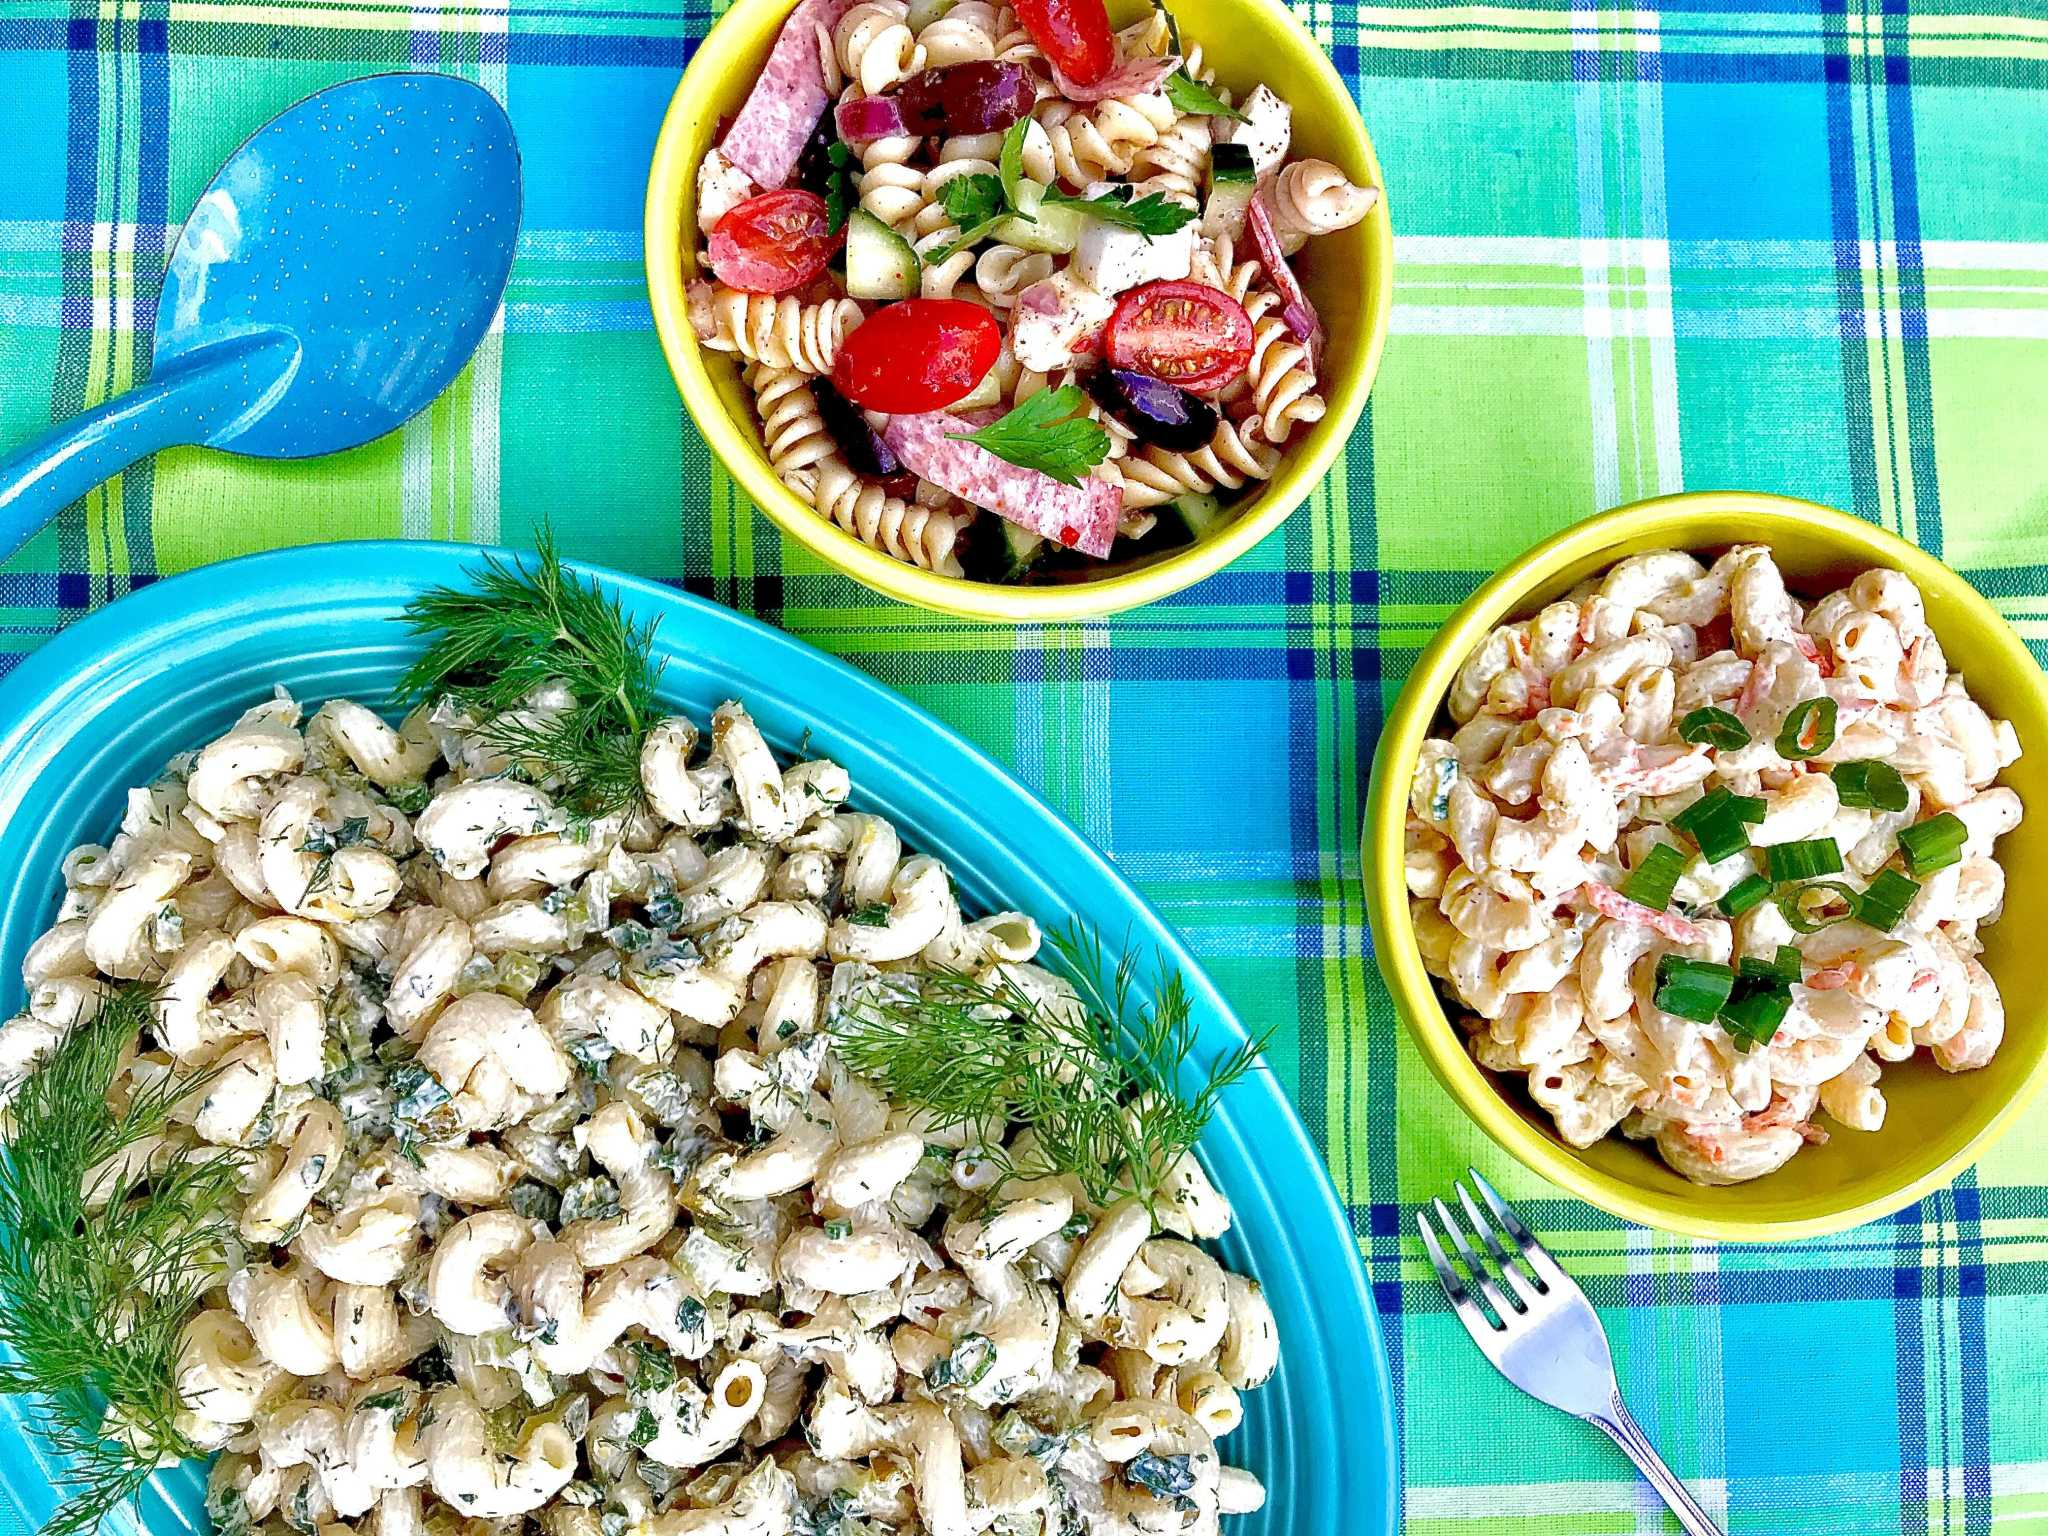 Here are some helpful tips to improve your pasta salad game